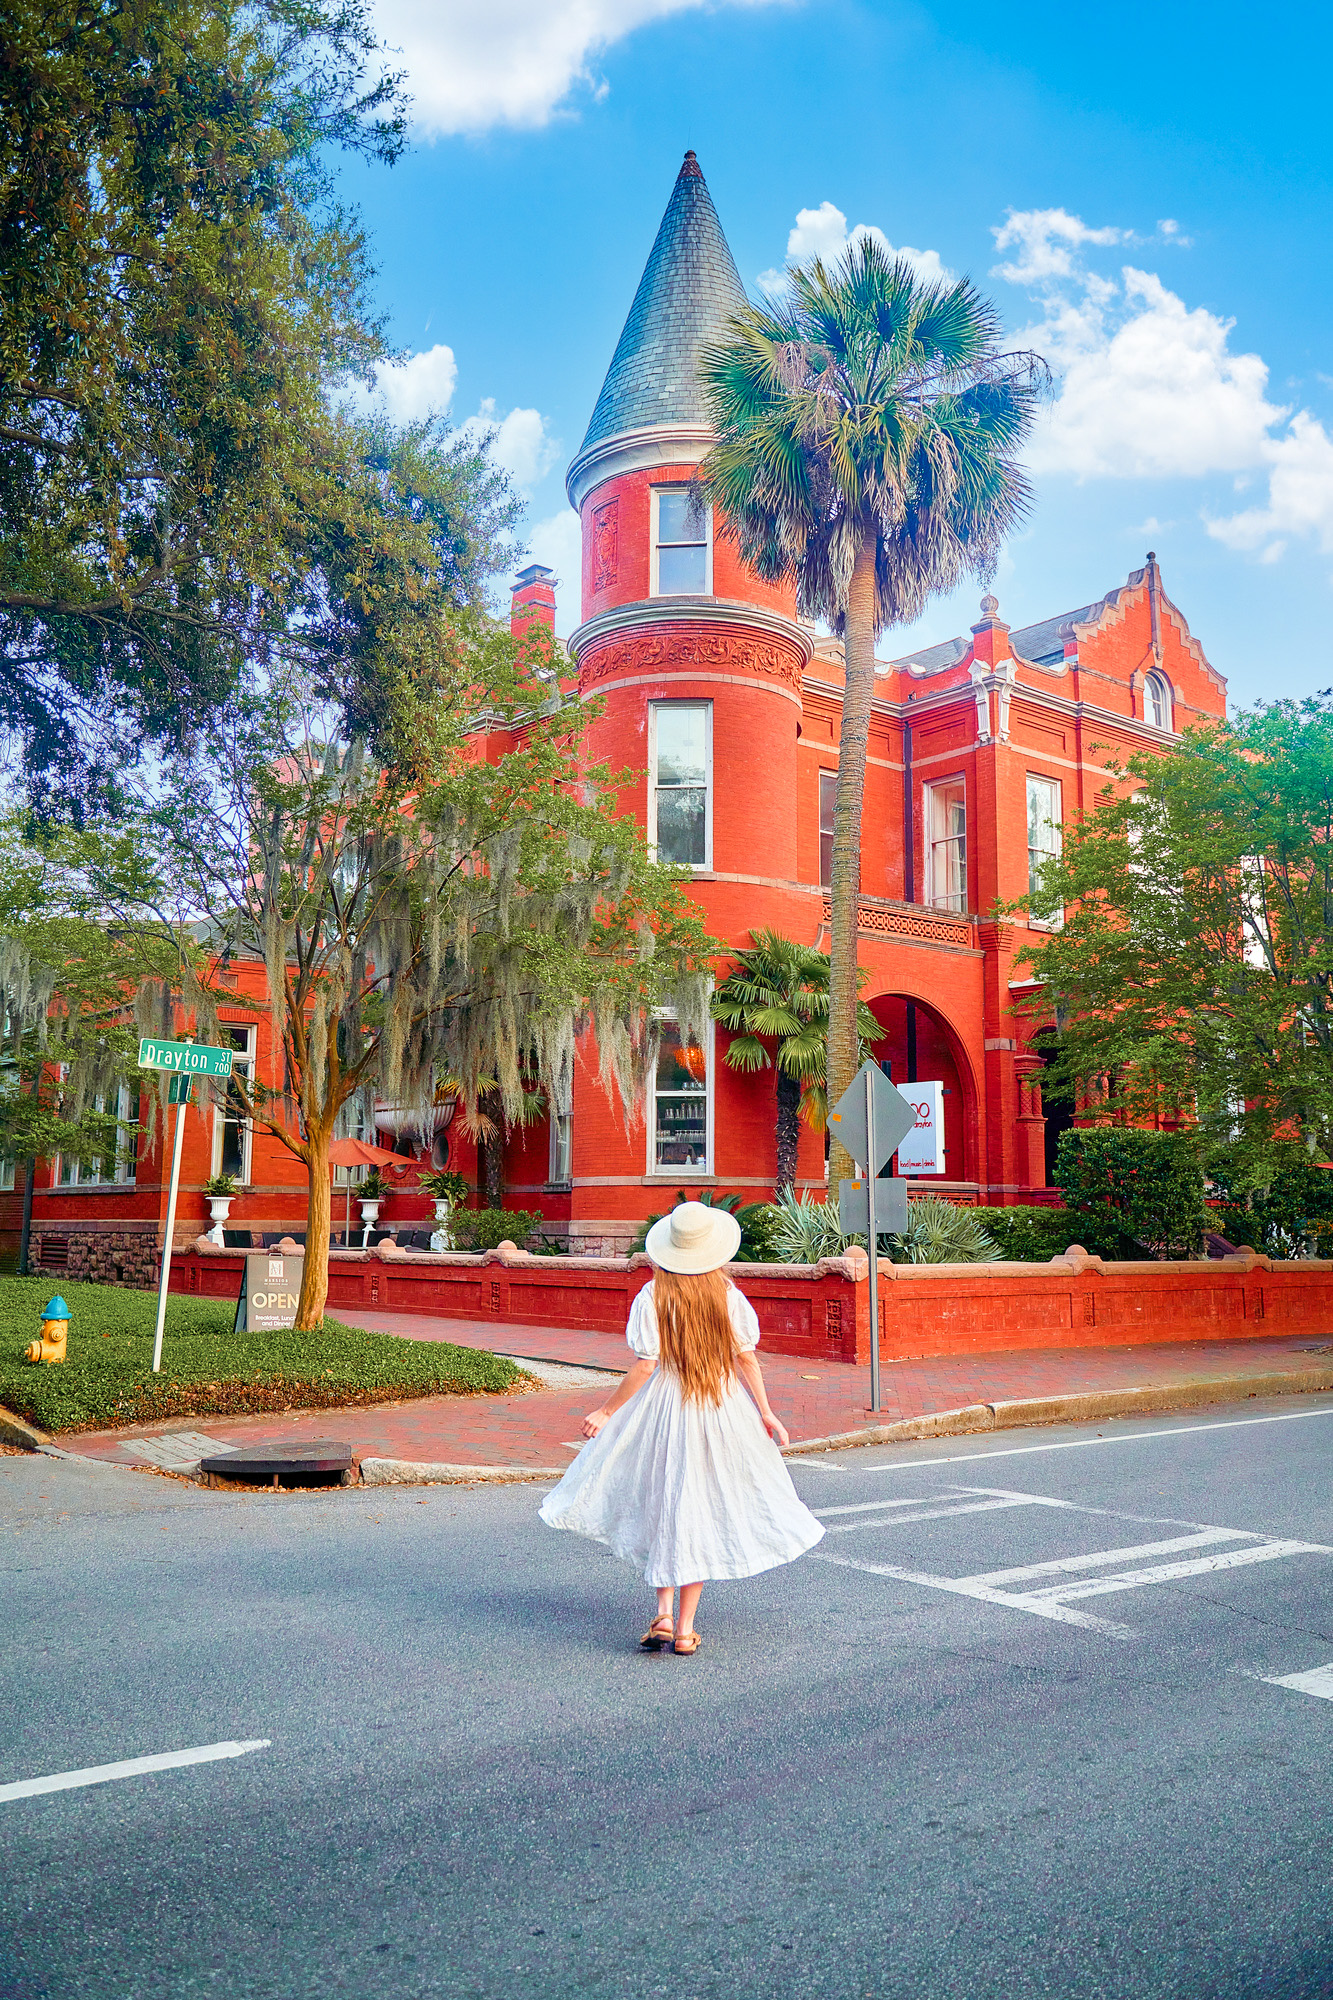 A woman with long hair wearing a white sundress and sun hat standing in the road in front of the Forsyth Mansion. Forsyth Mansion is a large brick home with turrets, lots of windows with white trim, and a courtyard. There are a lot of trees in front of it and shrubs and it is on the corner of the street. One of the best Savannah photo spots.